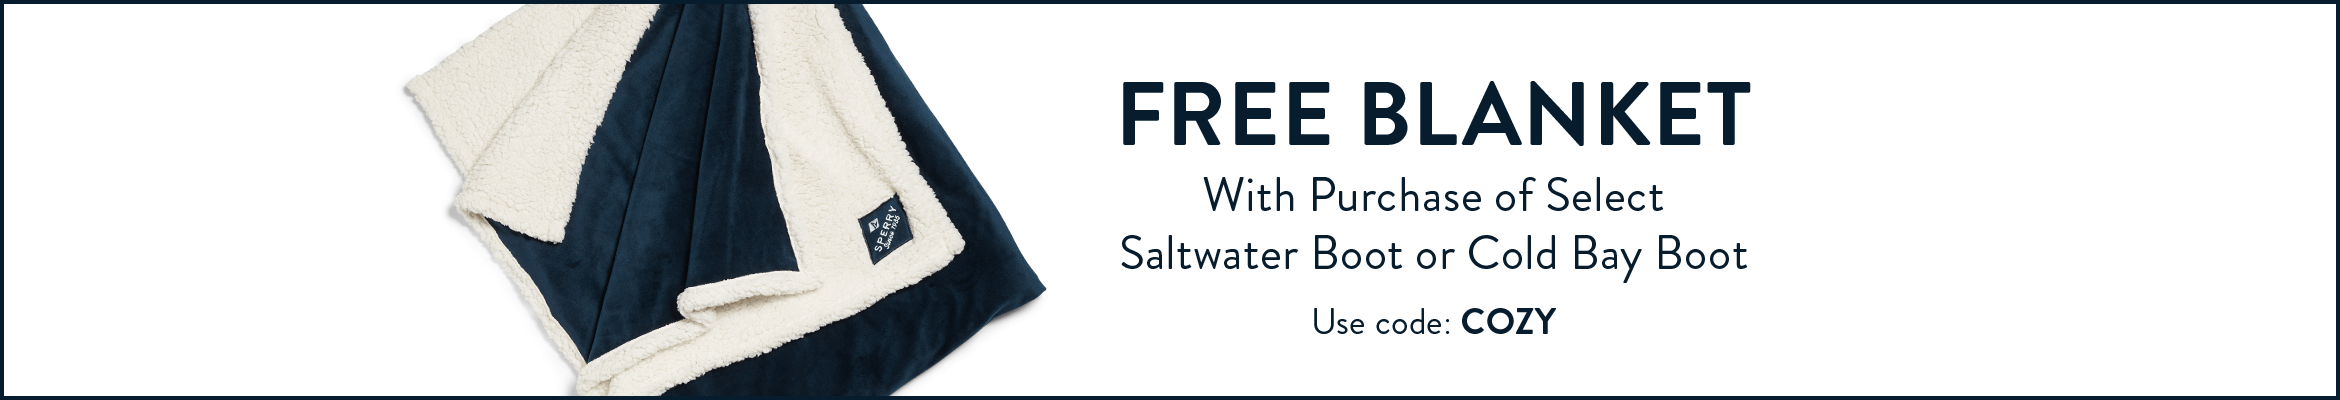 FREE BLANKET! With Purchase of Select  Saltwater Boot or Cold Bay Boot. Use code: COZY.